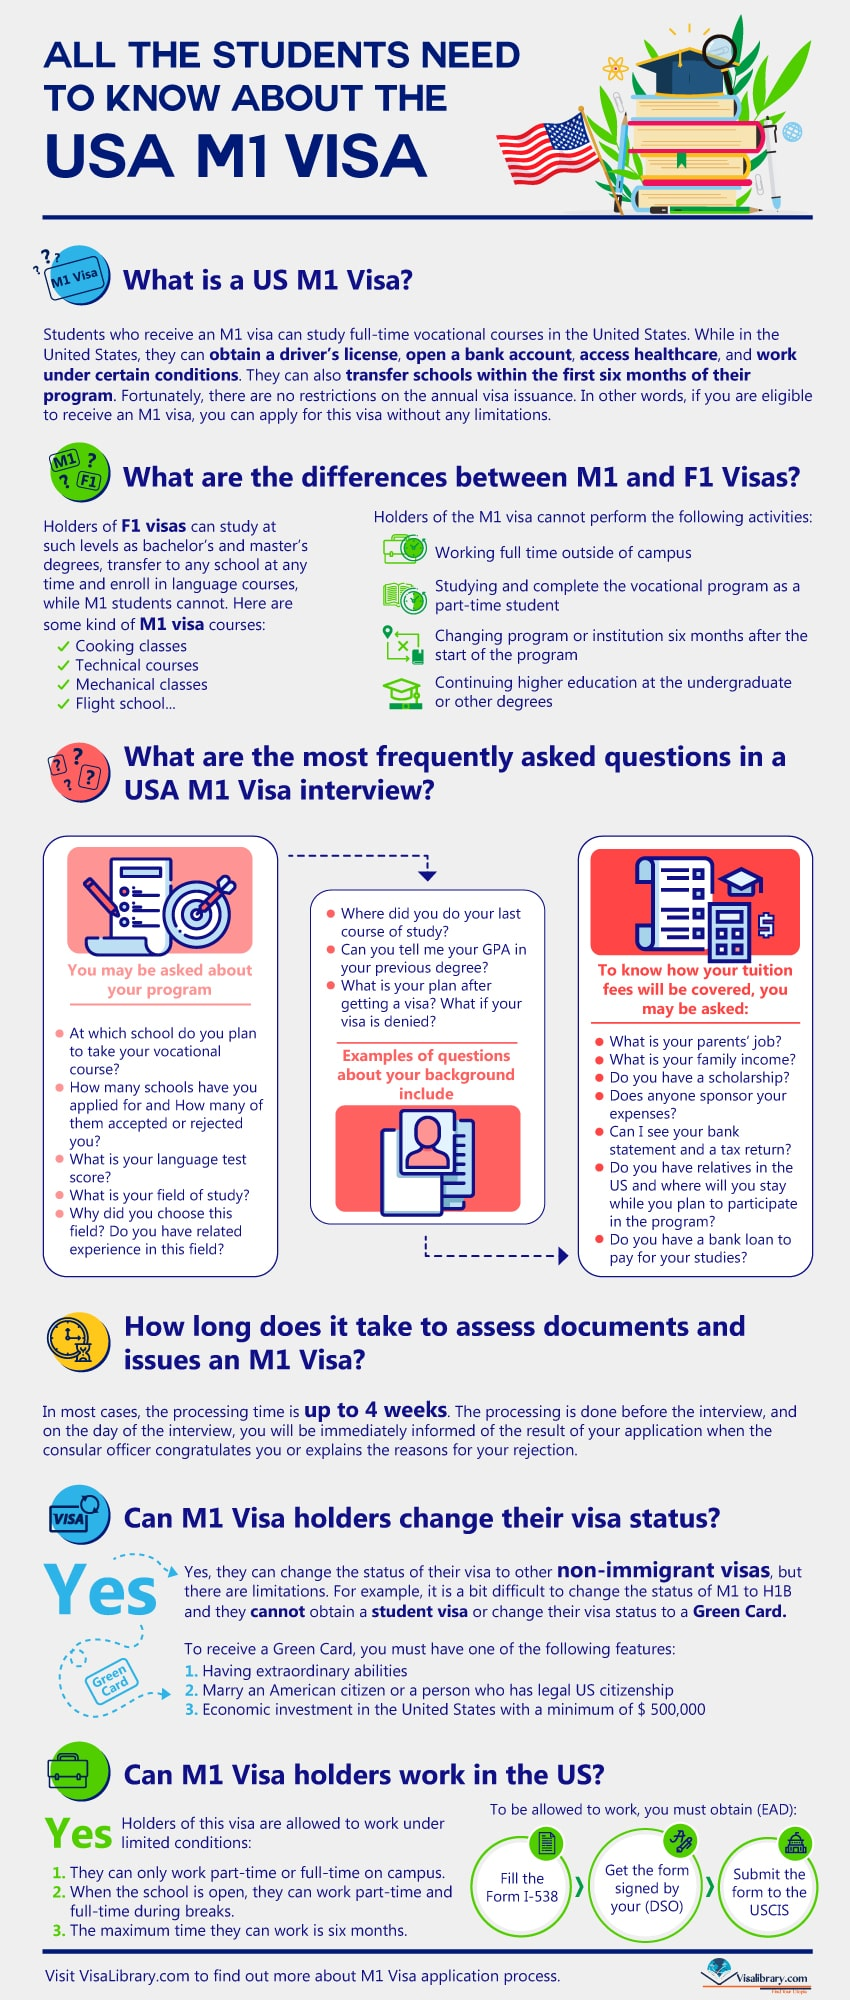 All the students need to know about the USA M1 Visa